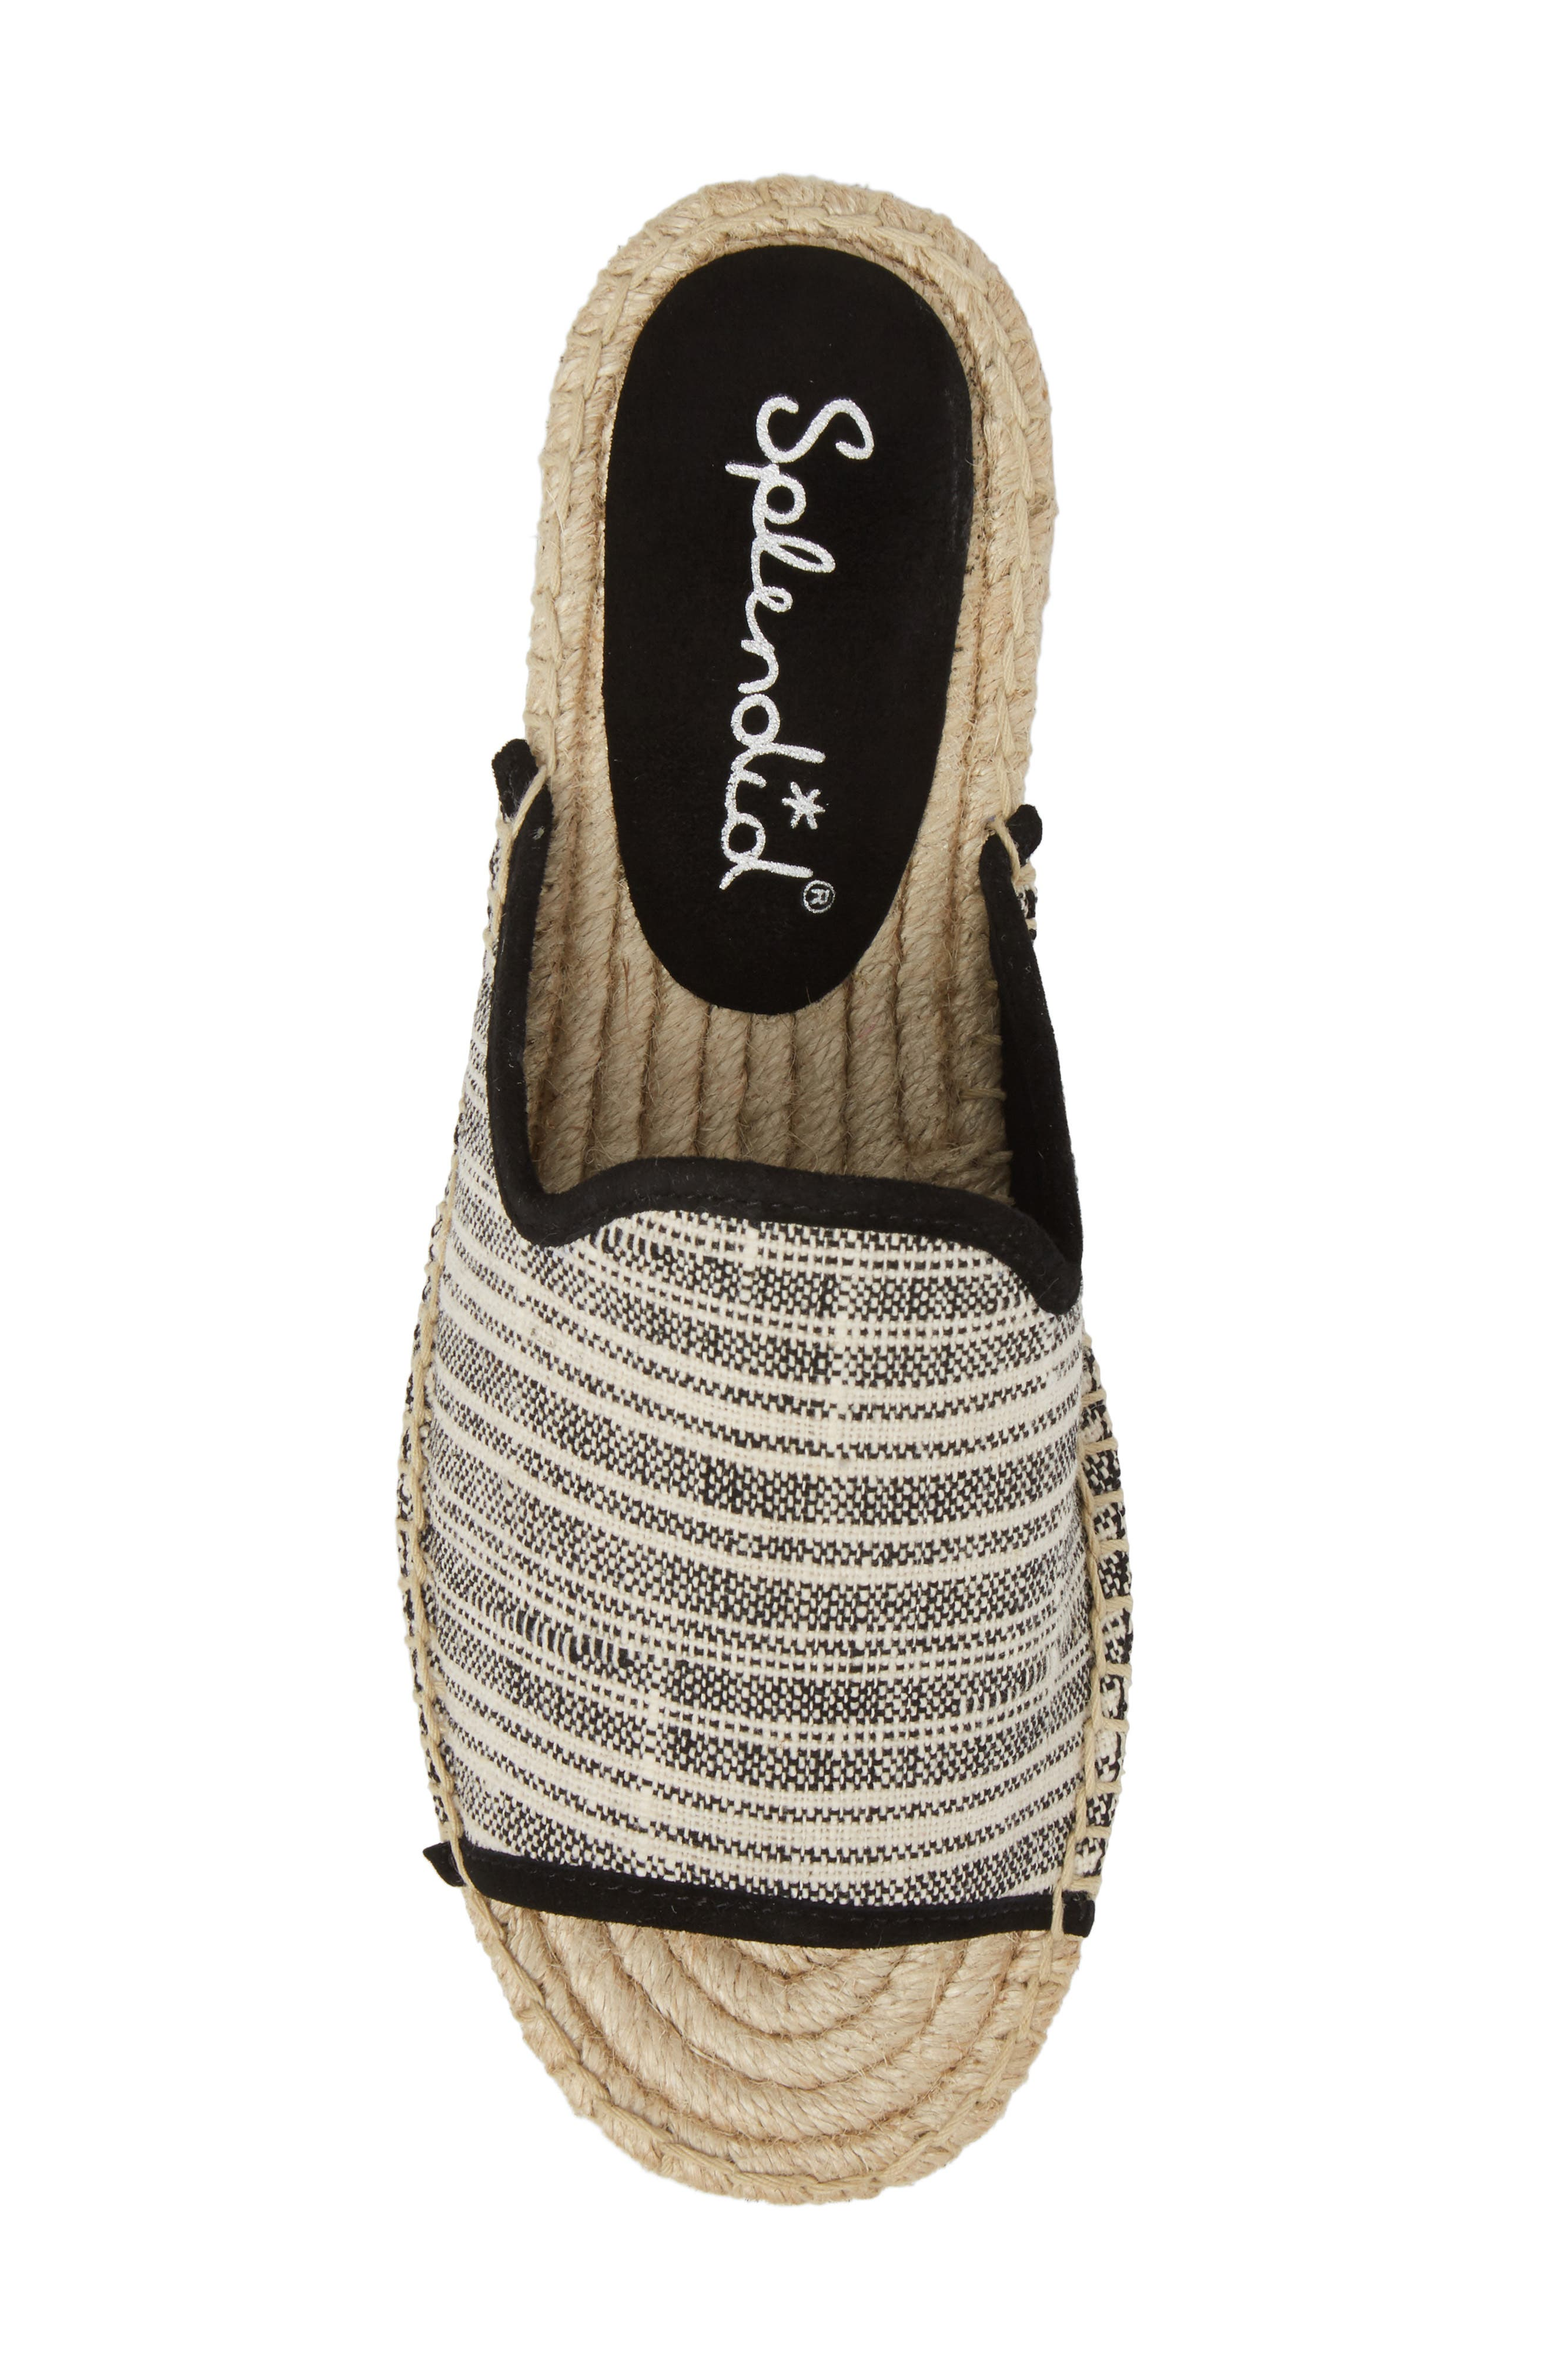 Franci Espadrille Slide Sandal,                             Alternate thumbnail 5, color,                             BLACK/ NATURAL FABRIC